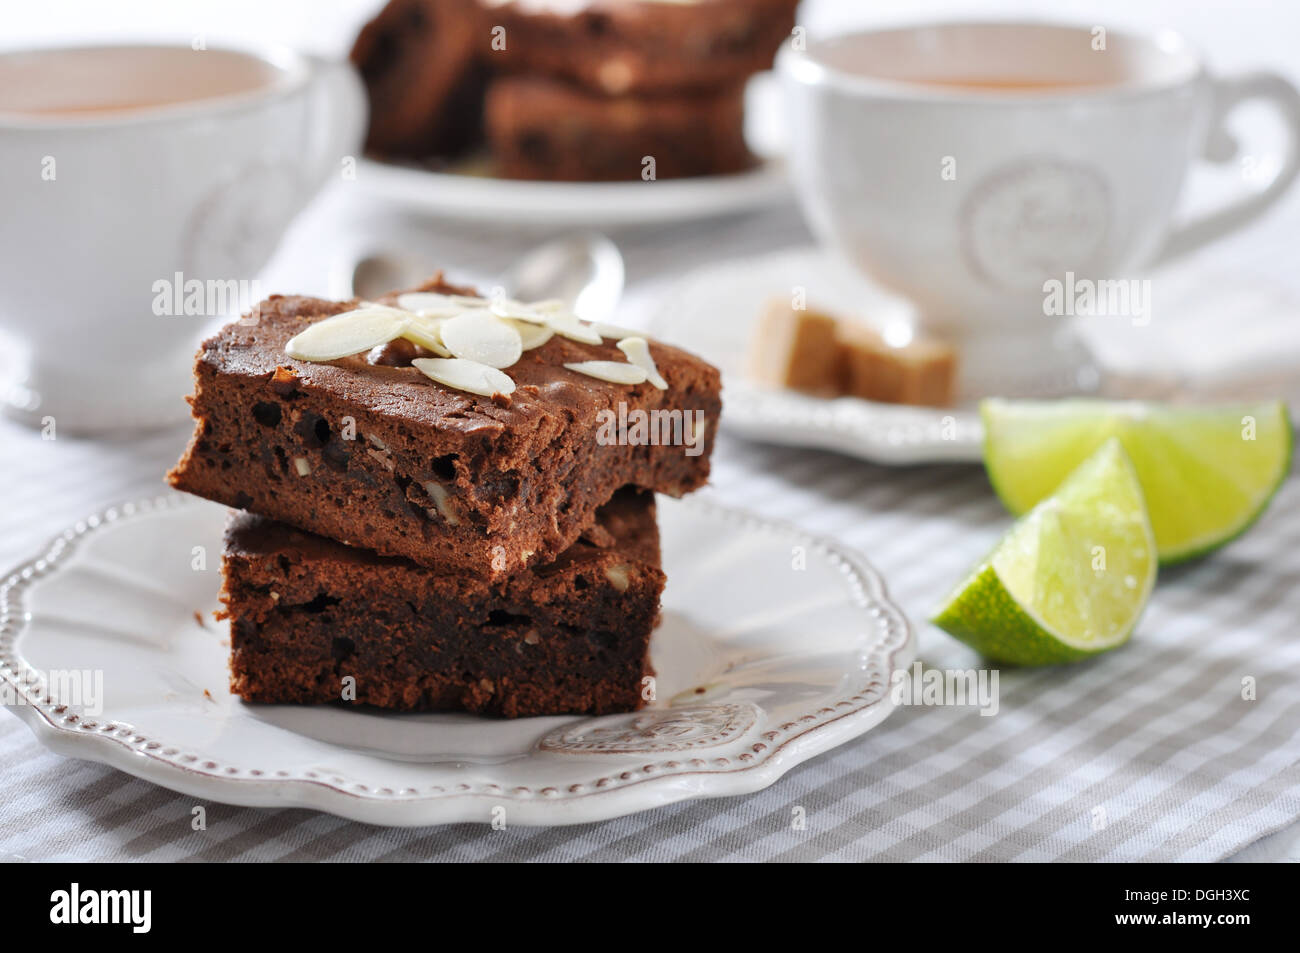 Brownie cake with almond flakes and cup of tea closeup - Stock Image